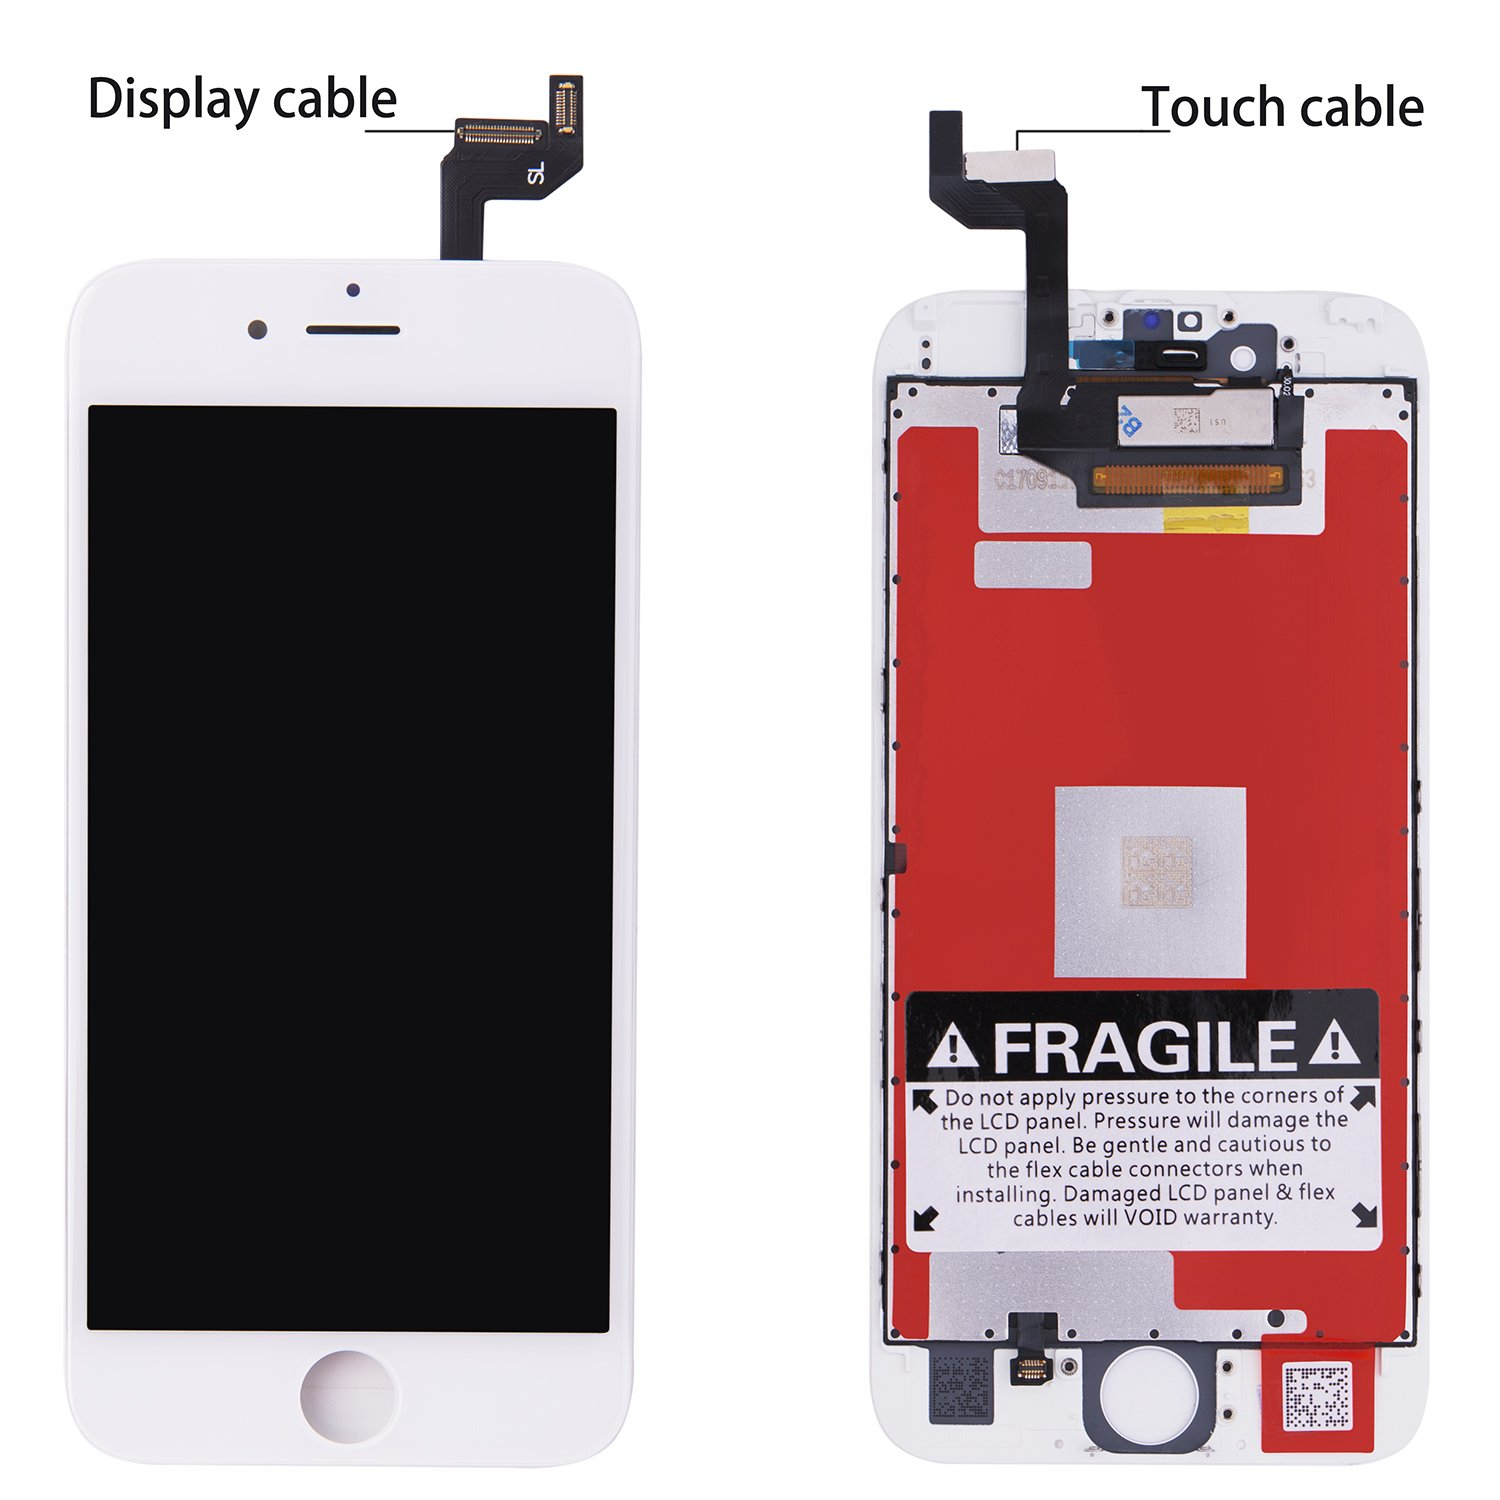 New iPhone 6S Screen Replacement LCD Dispaly for LCD Touch Screen Digitizer Assembly With 3D Touch Full Set Tools for iPhone 6S screen 4.7'' White by COCOCKA (Image #1)